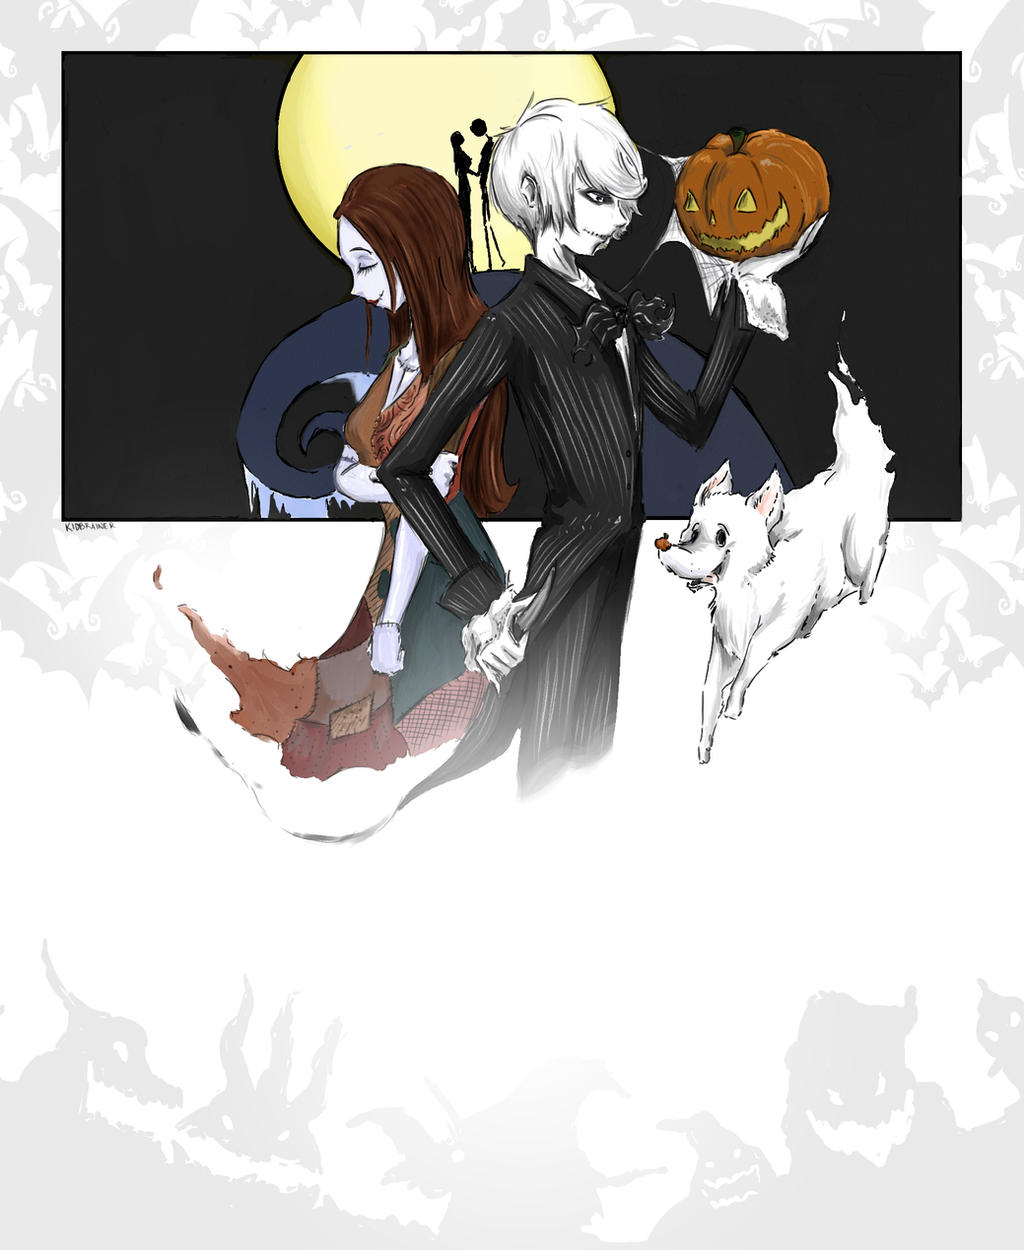 The Nightmare Before Christmas by kidbrainer on DeviantArt